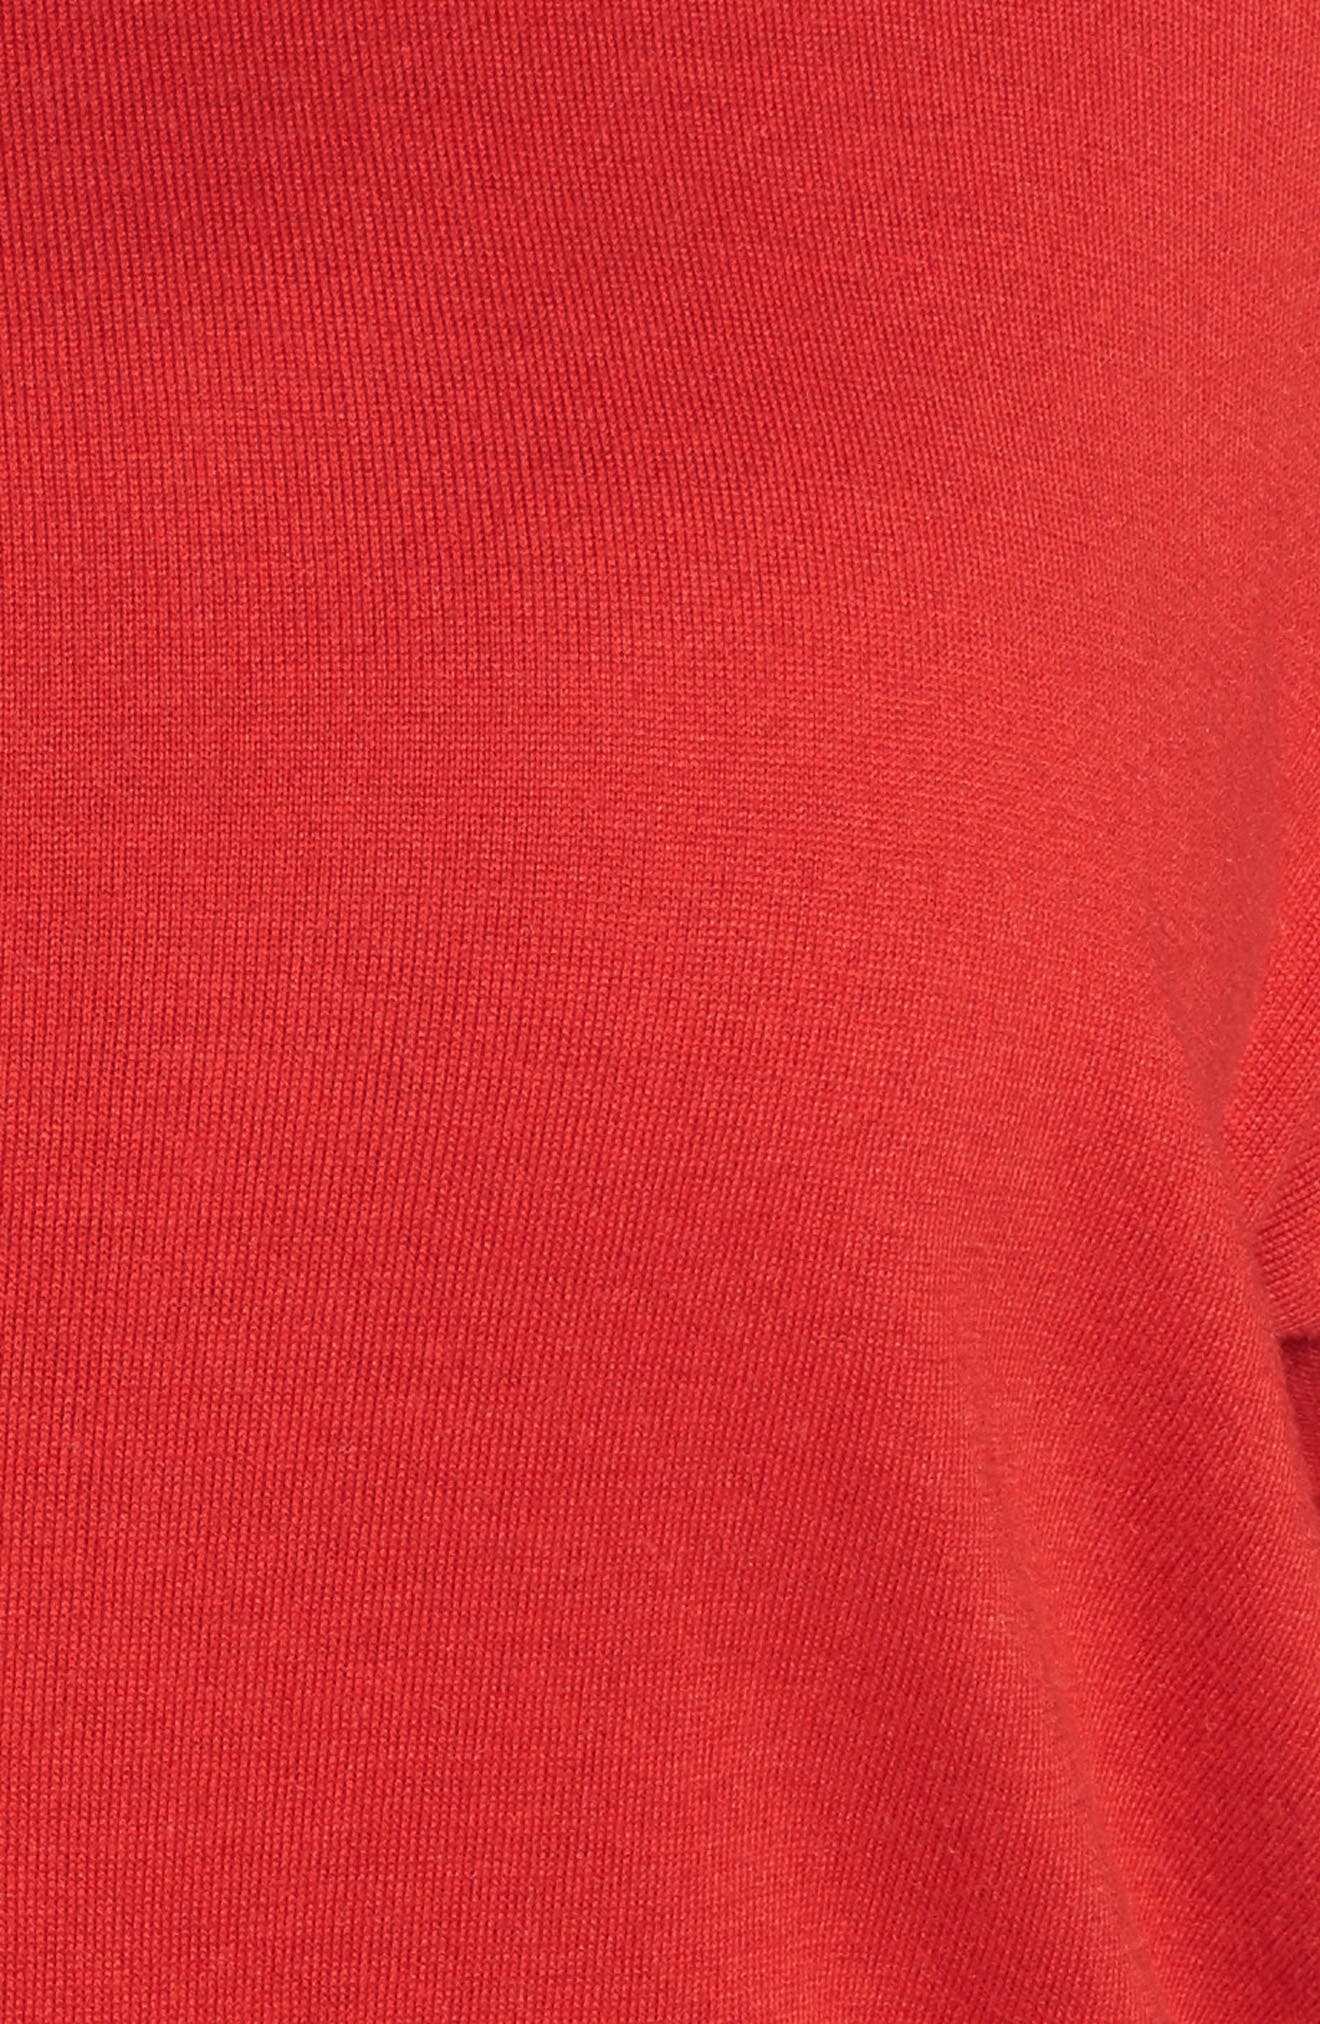 Dolman Sleeve Sweater,                             Alternate thumbnail 5, color,                             Red Samba